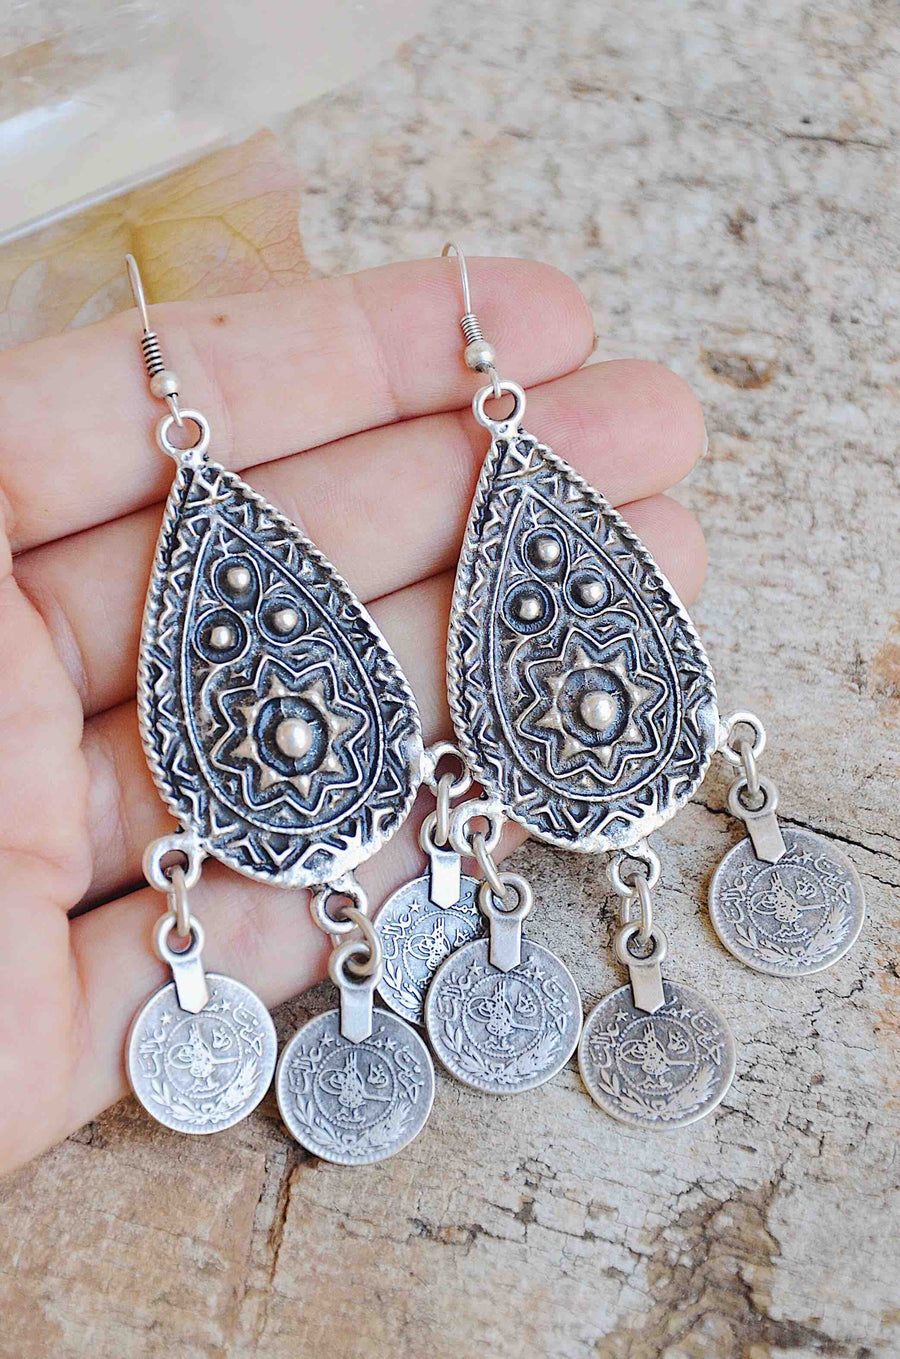 Handmade Turkish Silver Coin Earrings